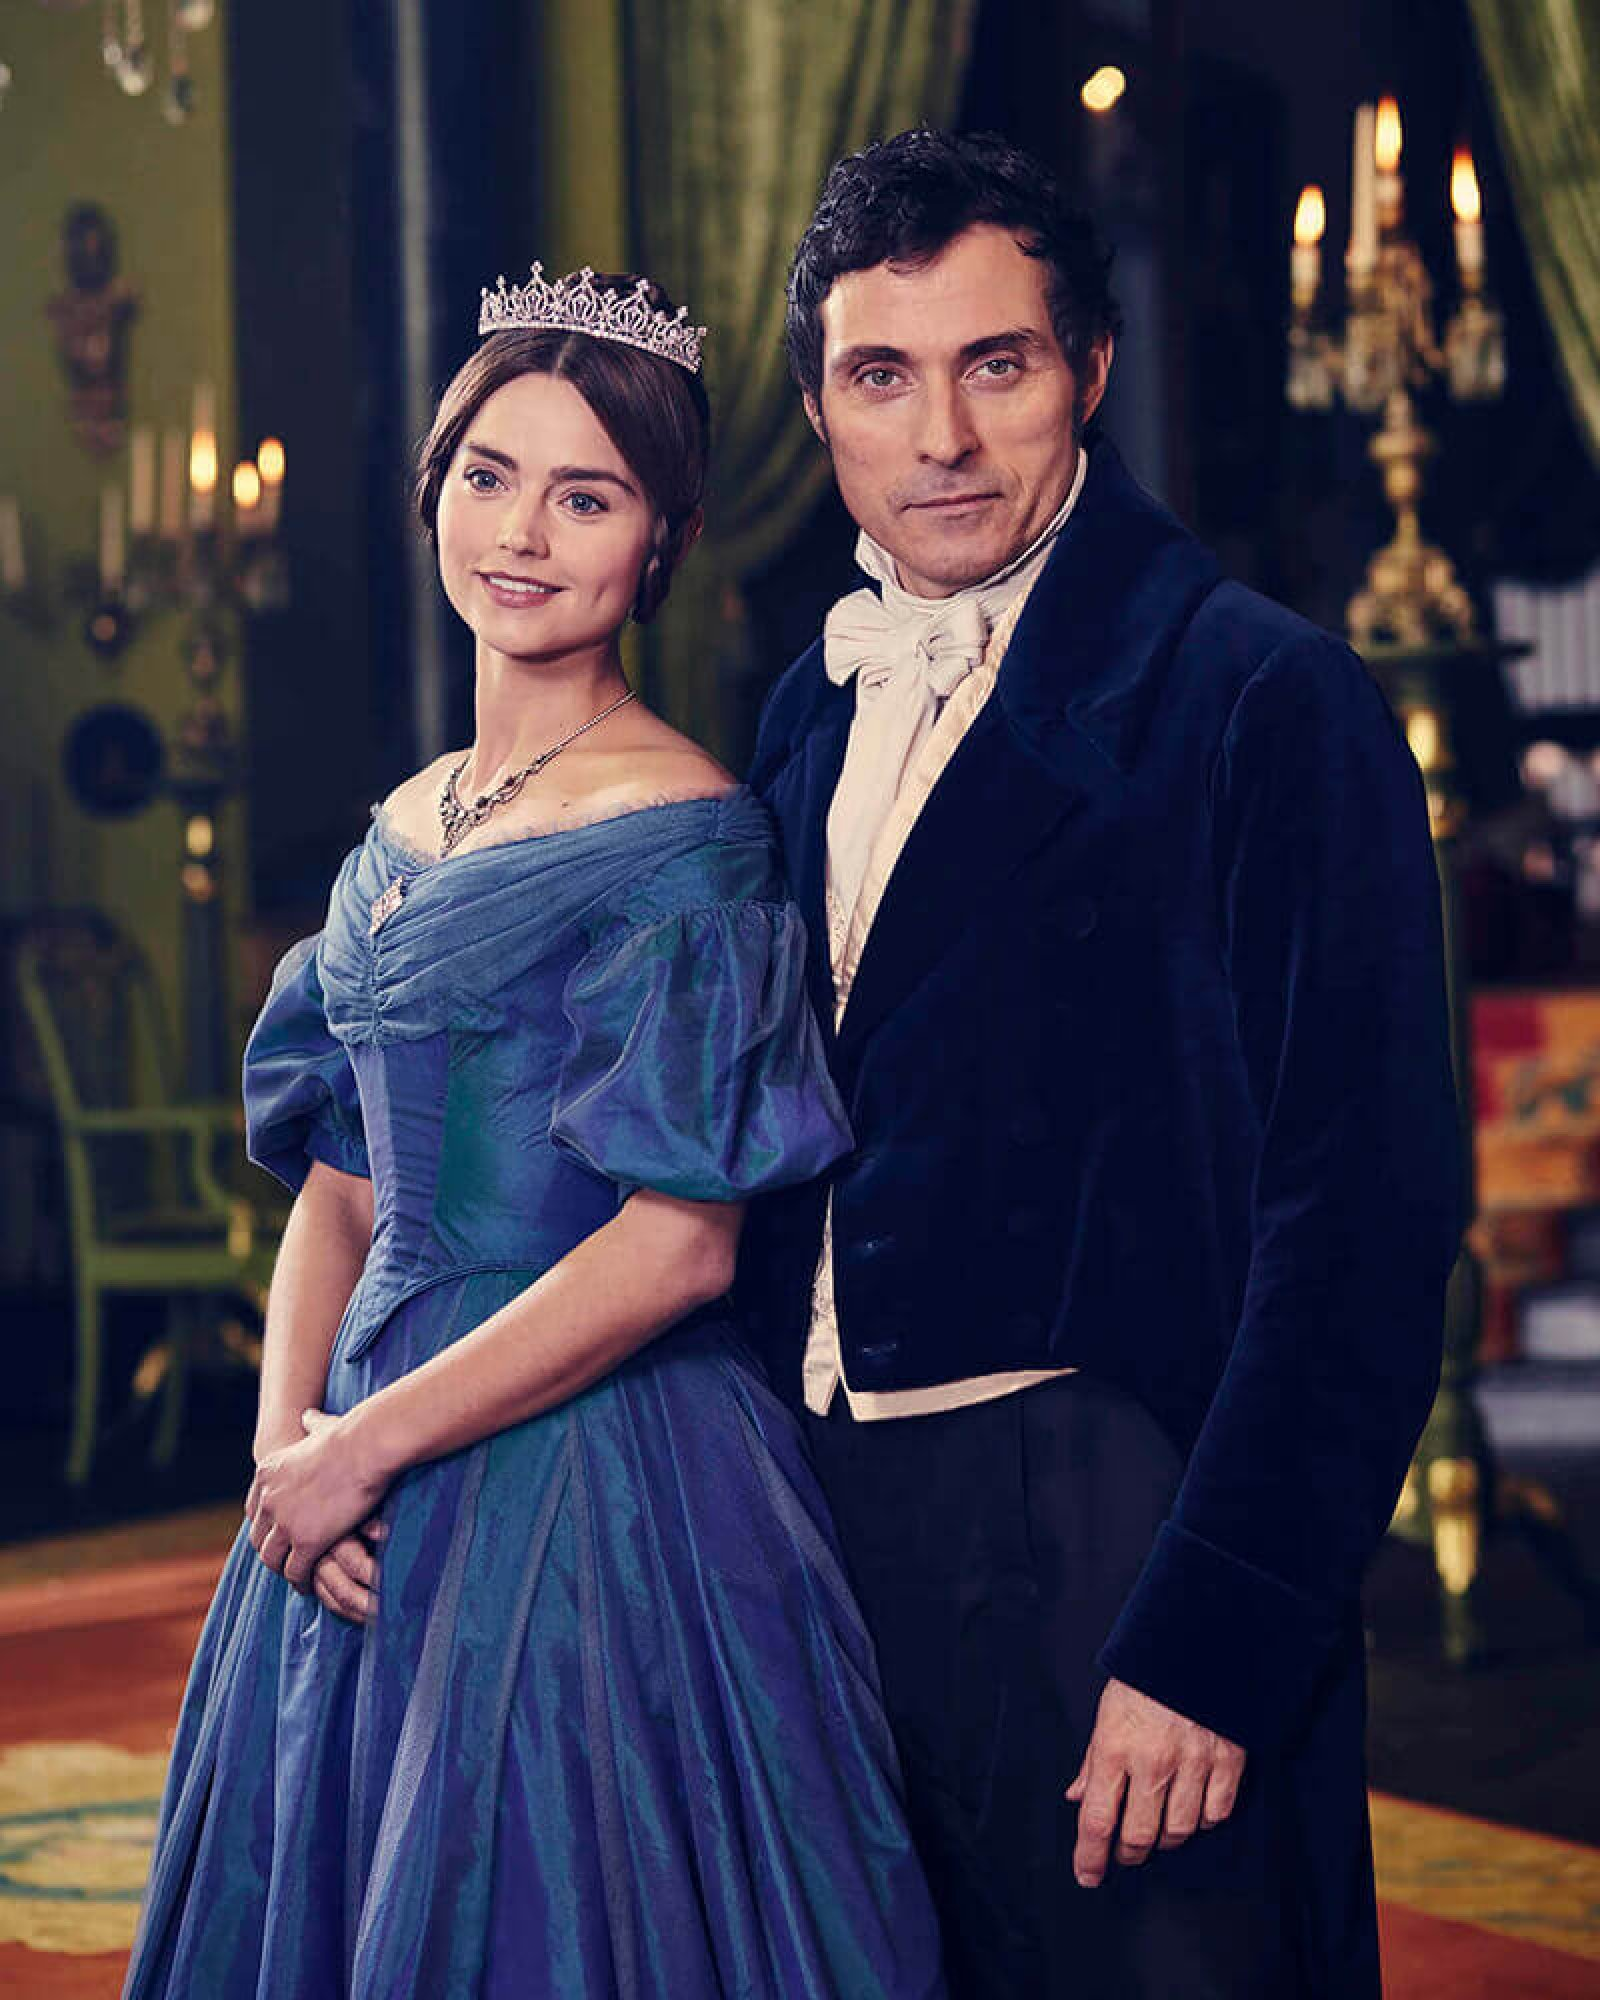 Victoria and Lord Melbourne